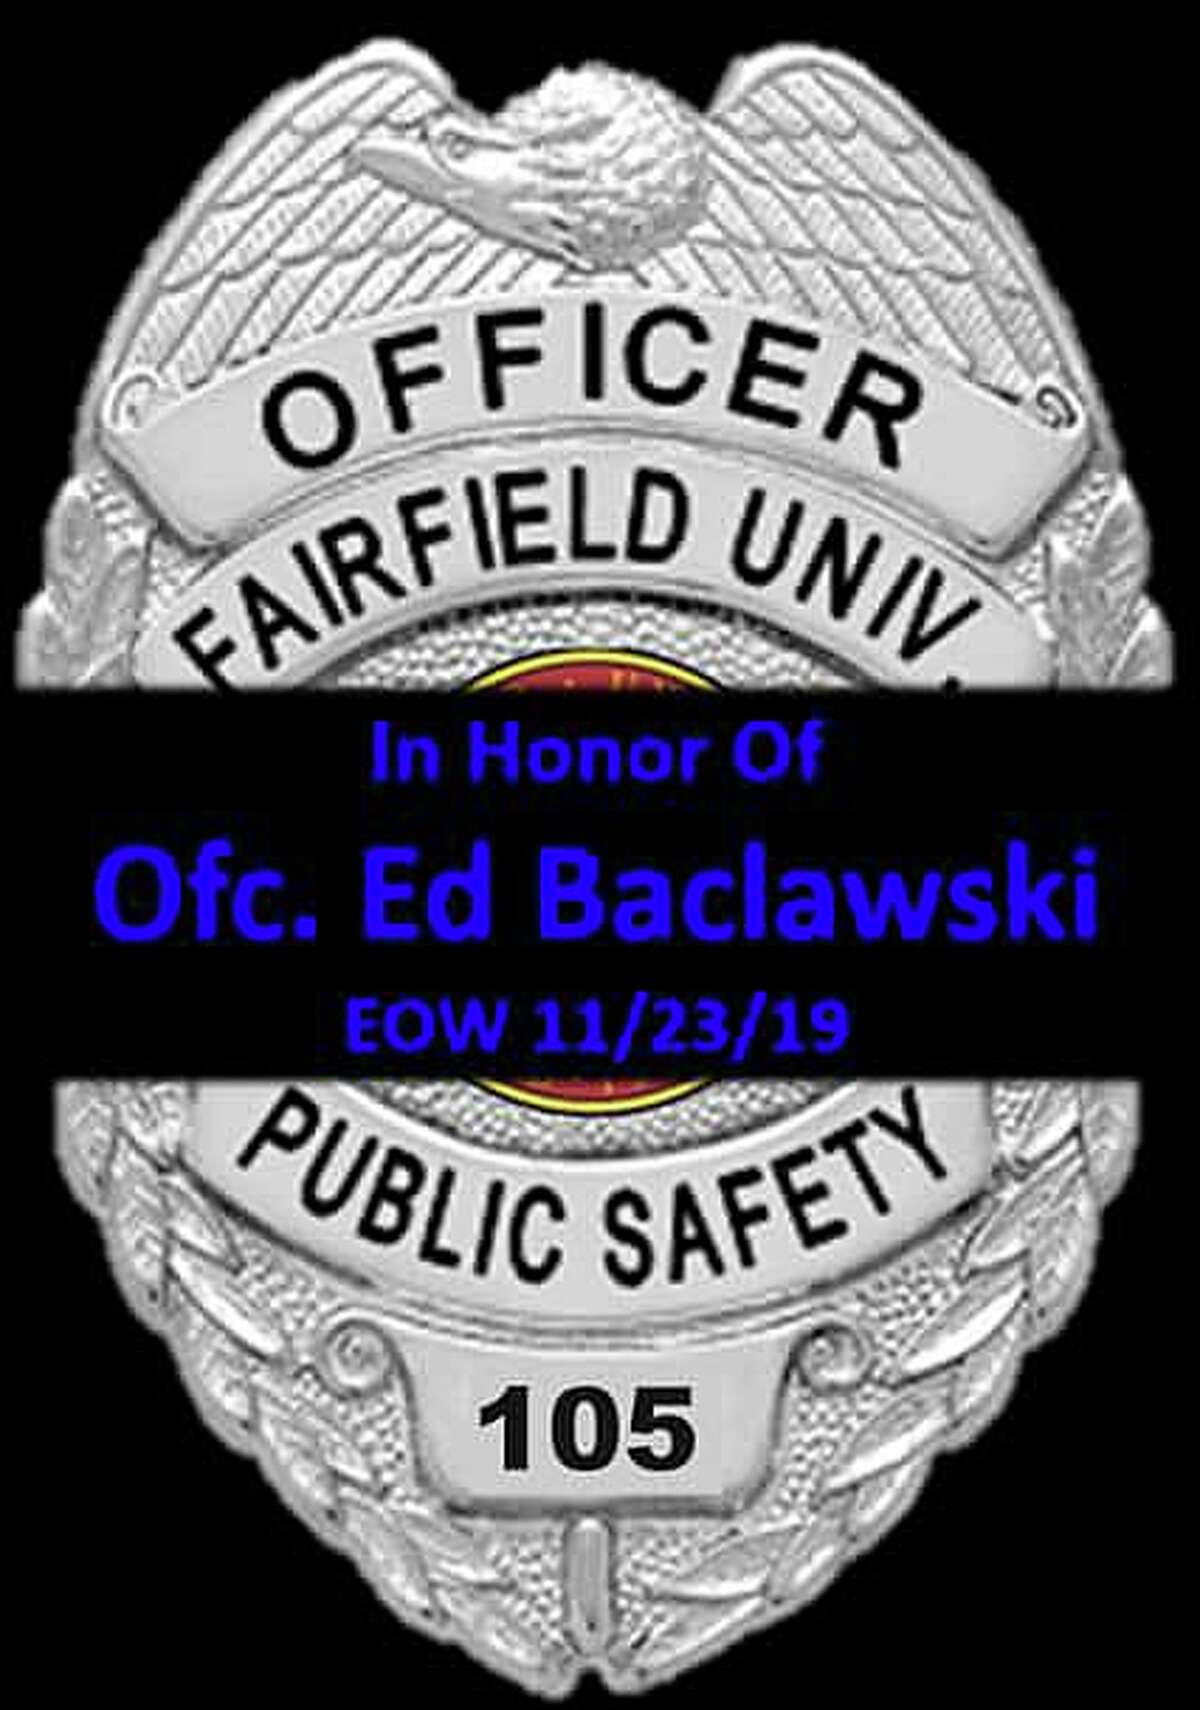 Ed Baclawski died Saturday at the age of 34.